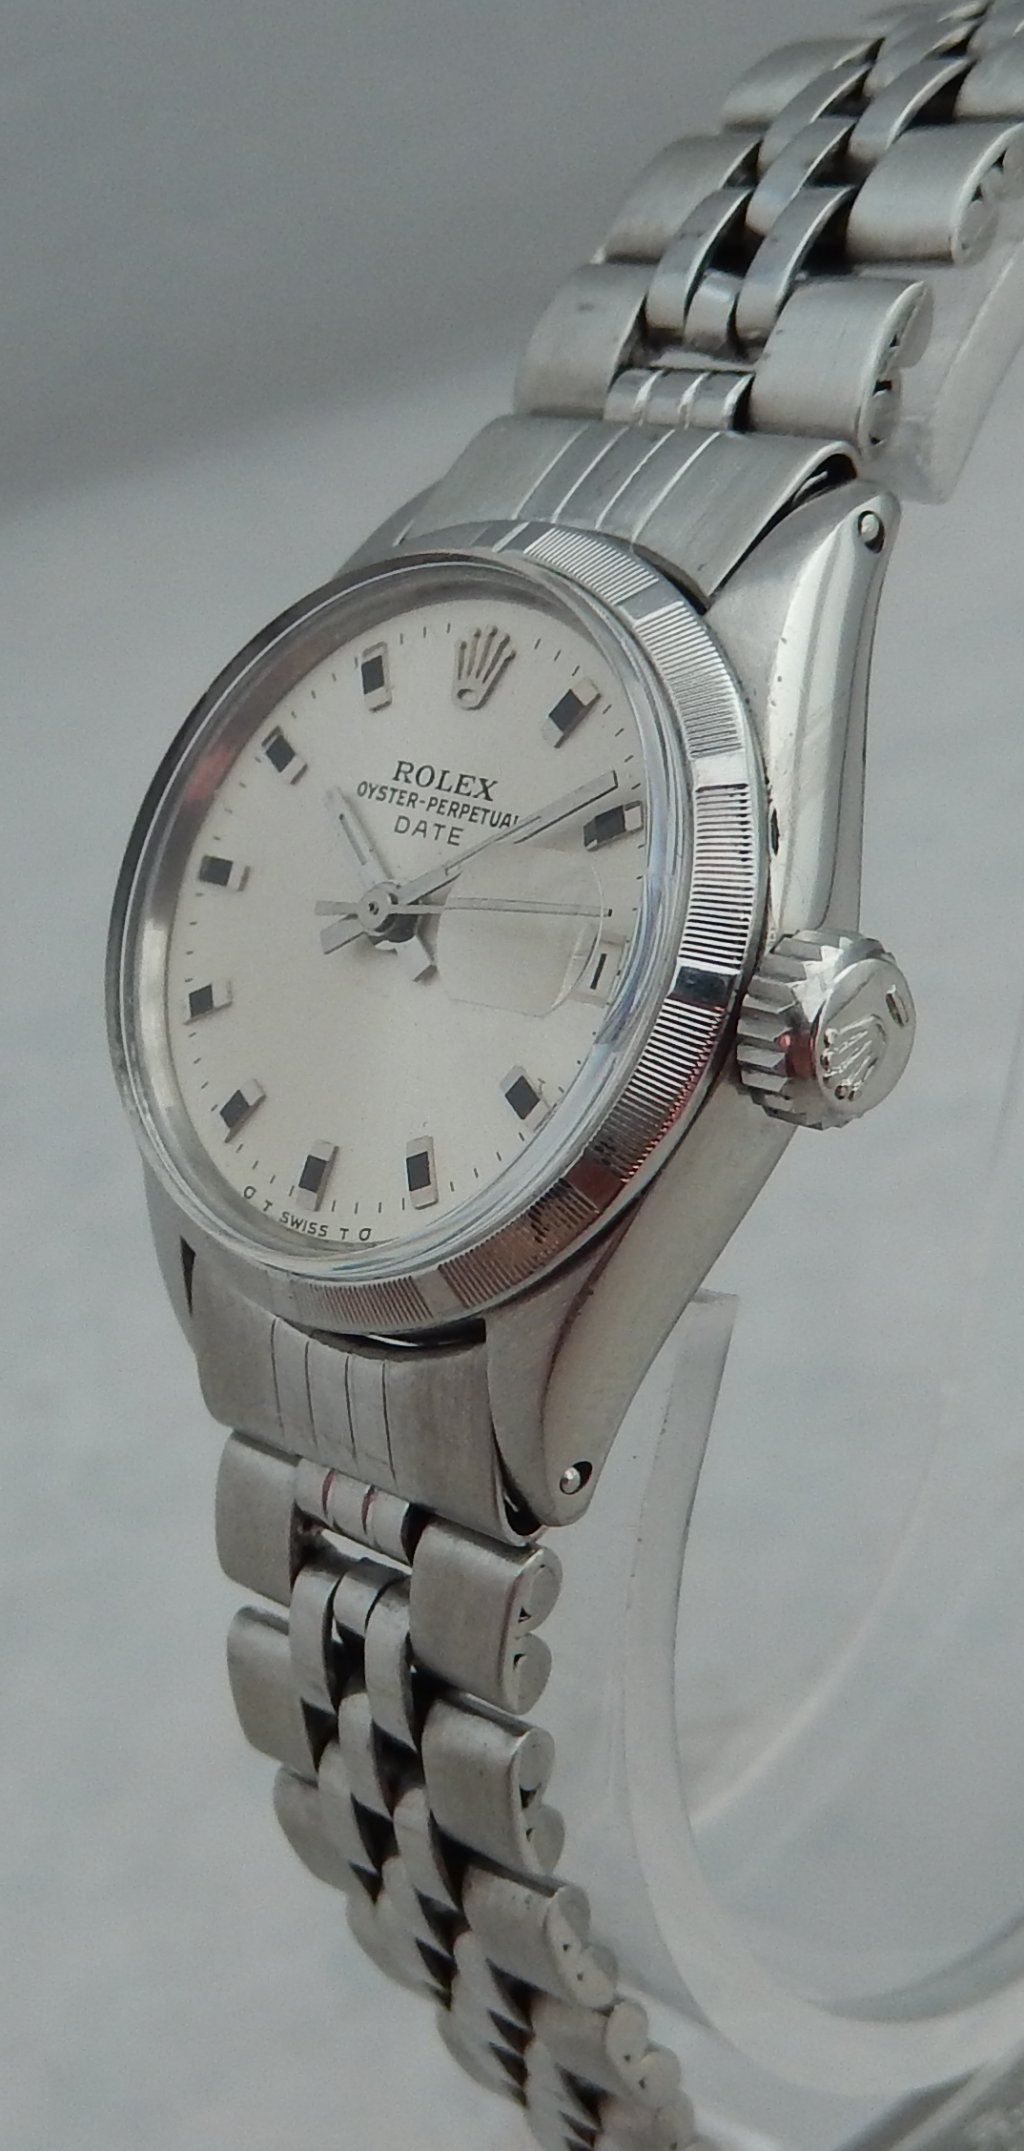 Stainless Rolex Details About Rolex Oyster Perpetual Datejust Stainless Steel Ladies Watch On Rolex Band 1964